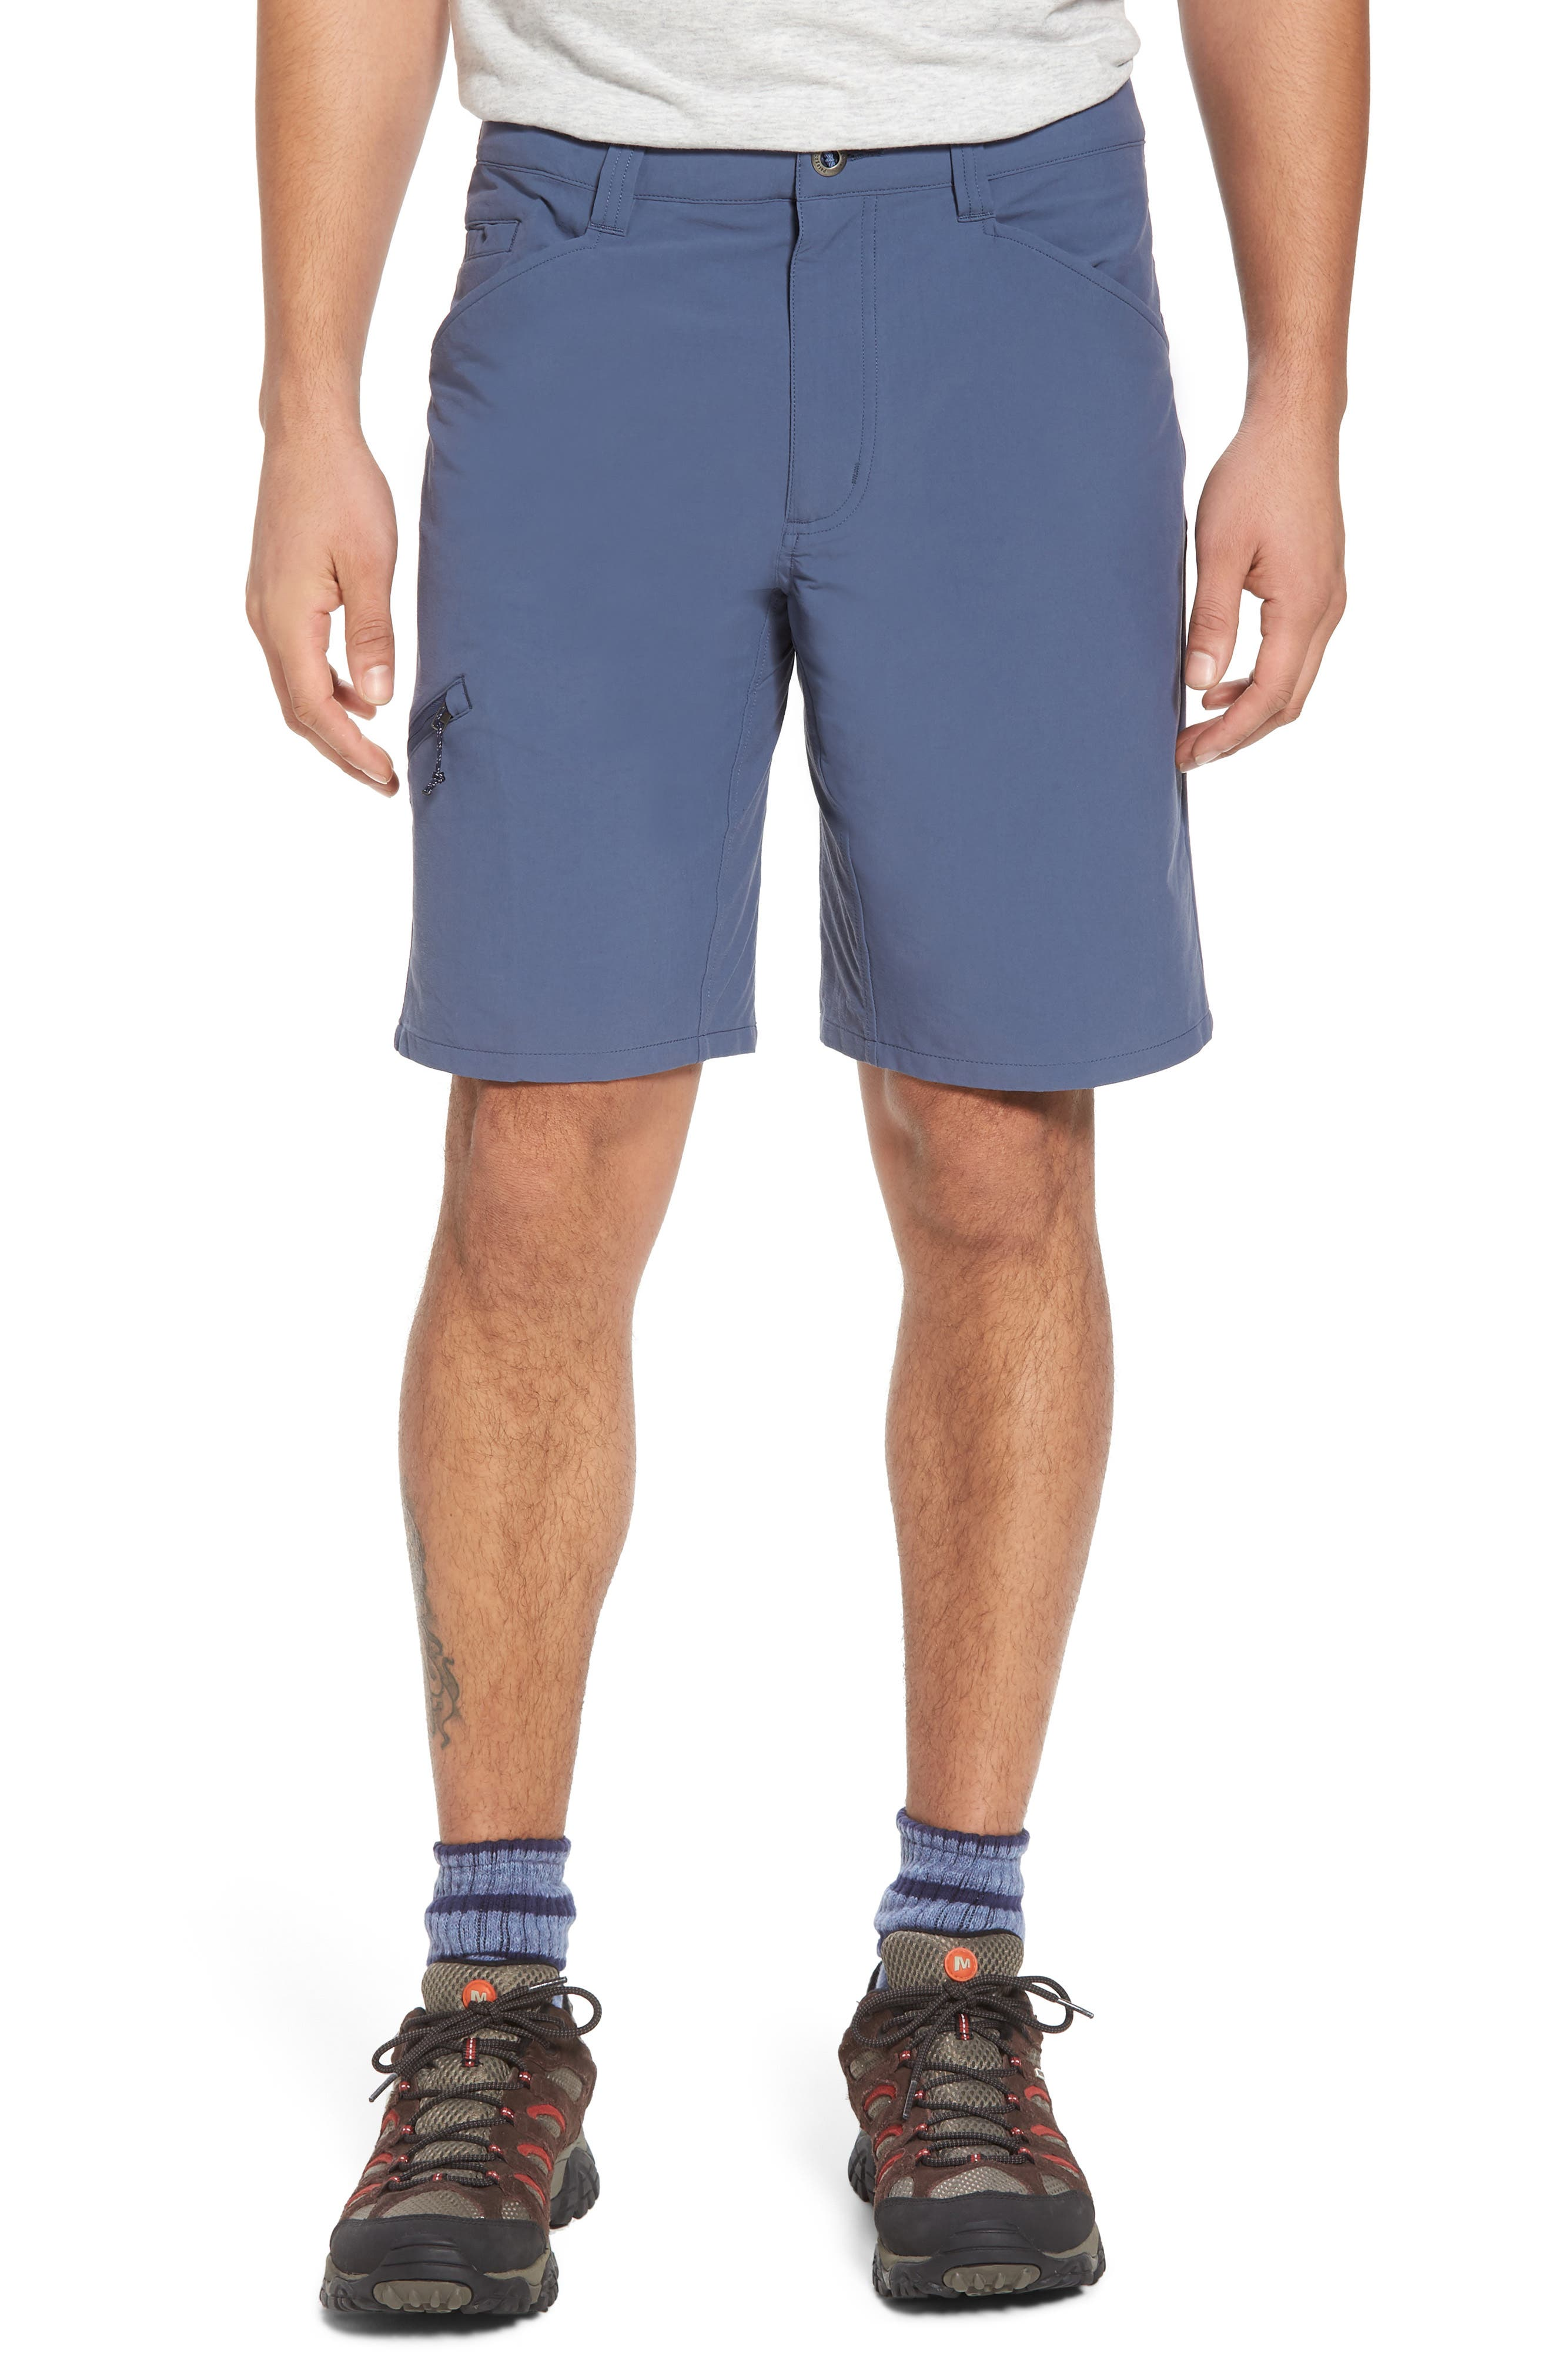 Quandary Shorts,                             Main thumbnail 1, color,                             Dolomite Blue